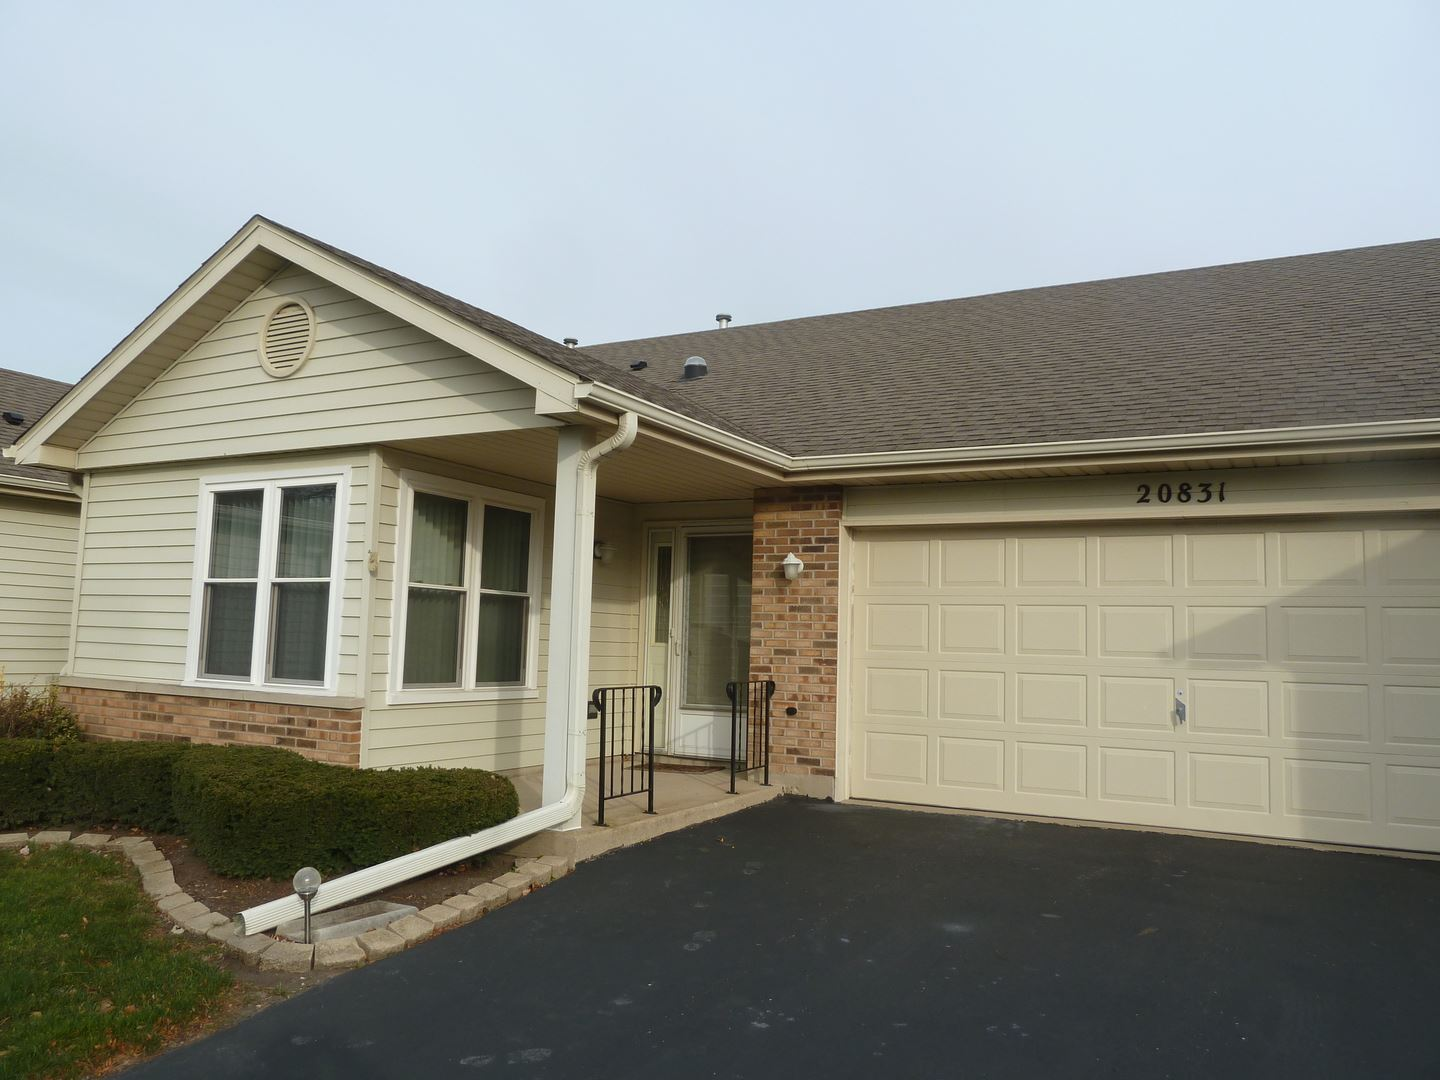 Photo of 20831 W Peppertree Court, Plainfield, IL 60544 (MLS # 10940189)